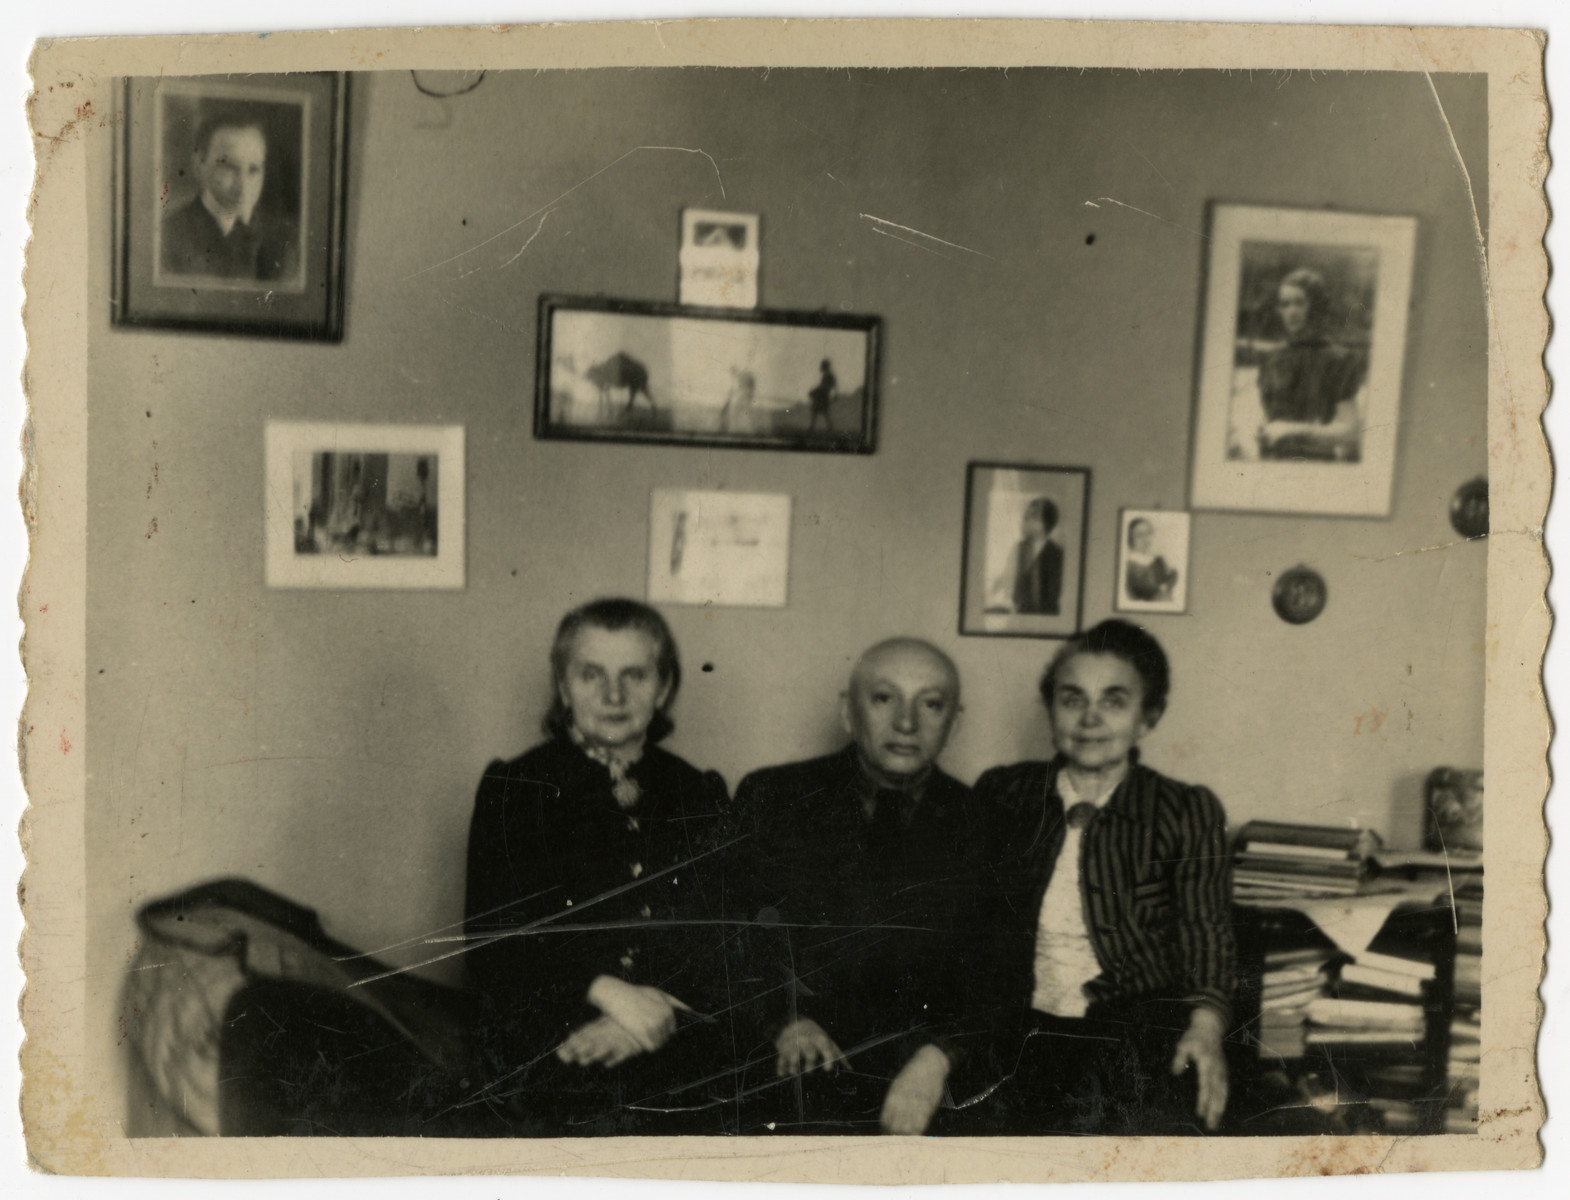 Three elderly Jews pose in their apartment in the Otwock ghetto.  From left to right are Regina and Benjamin Szymin and Regina's sister, Malka Flint.